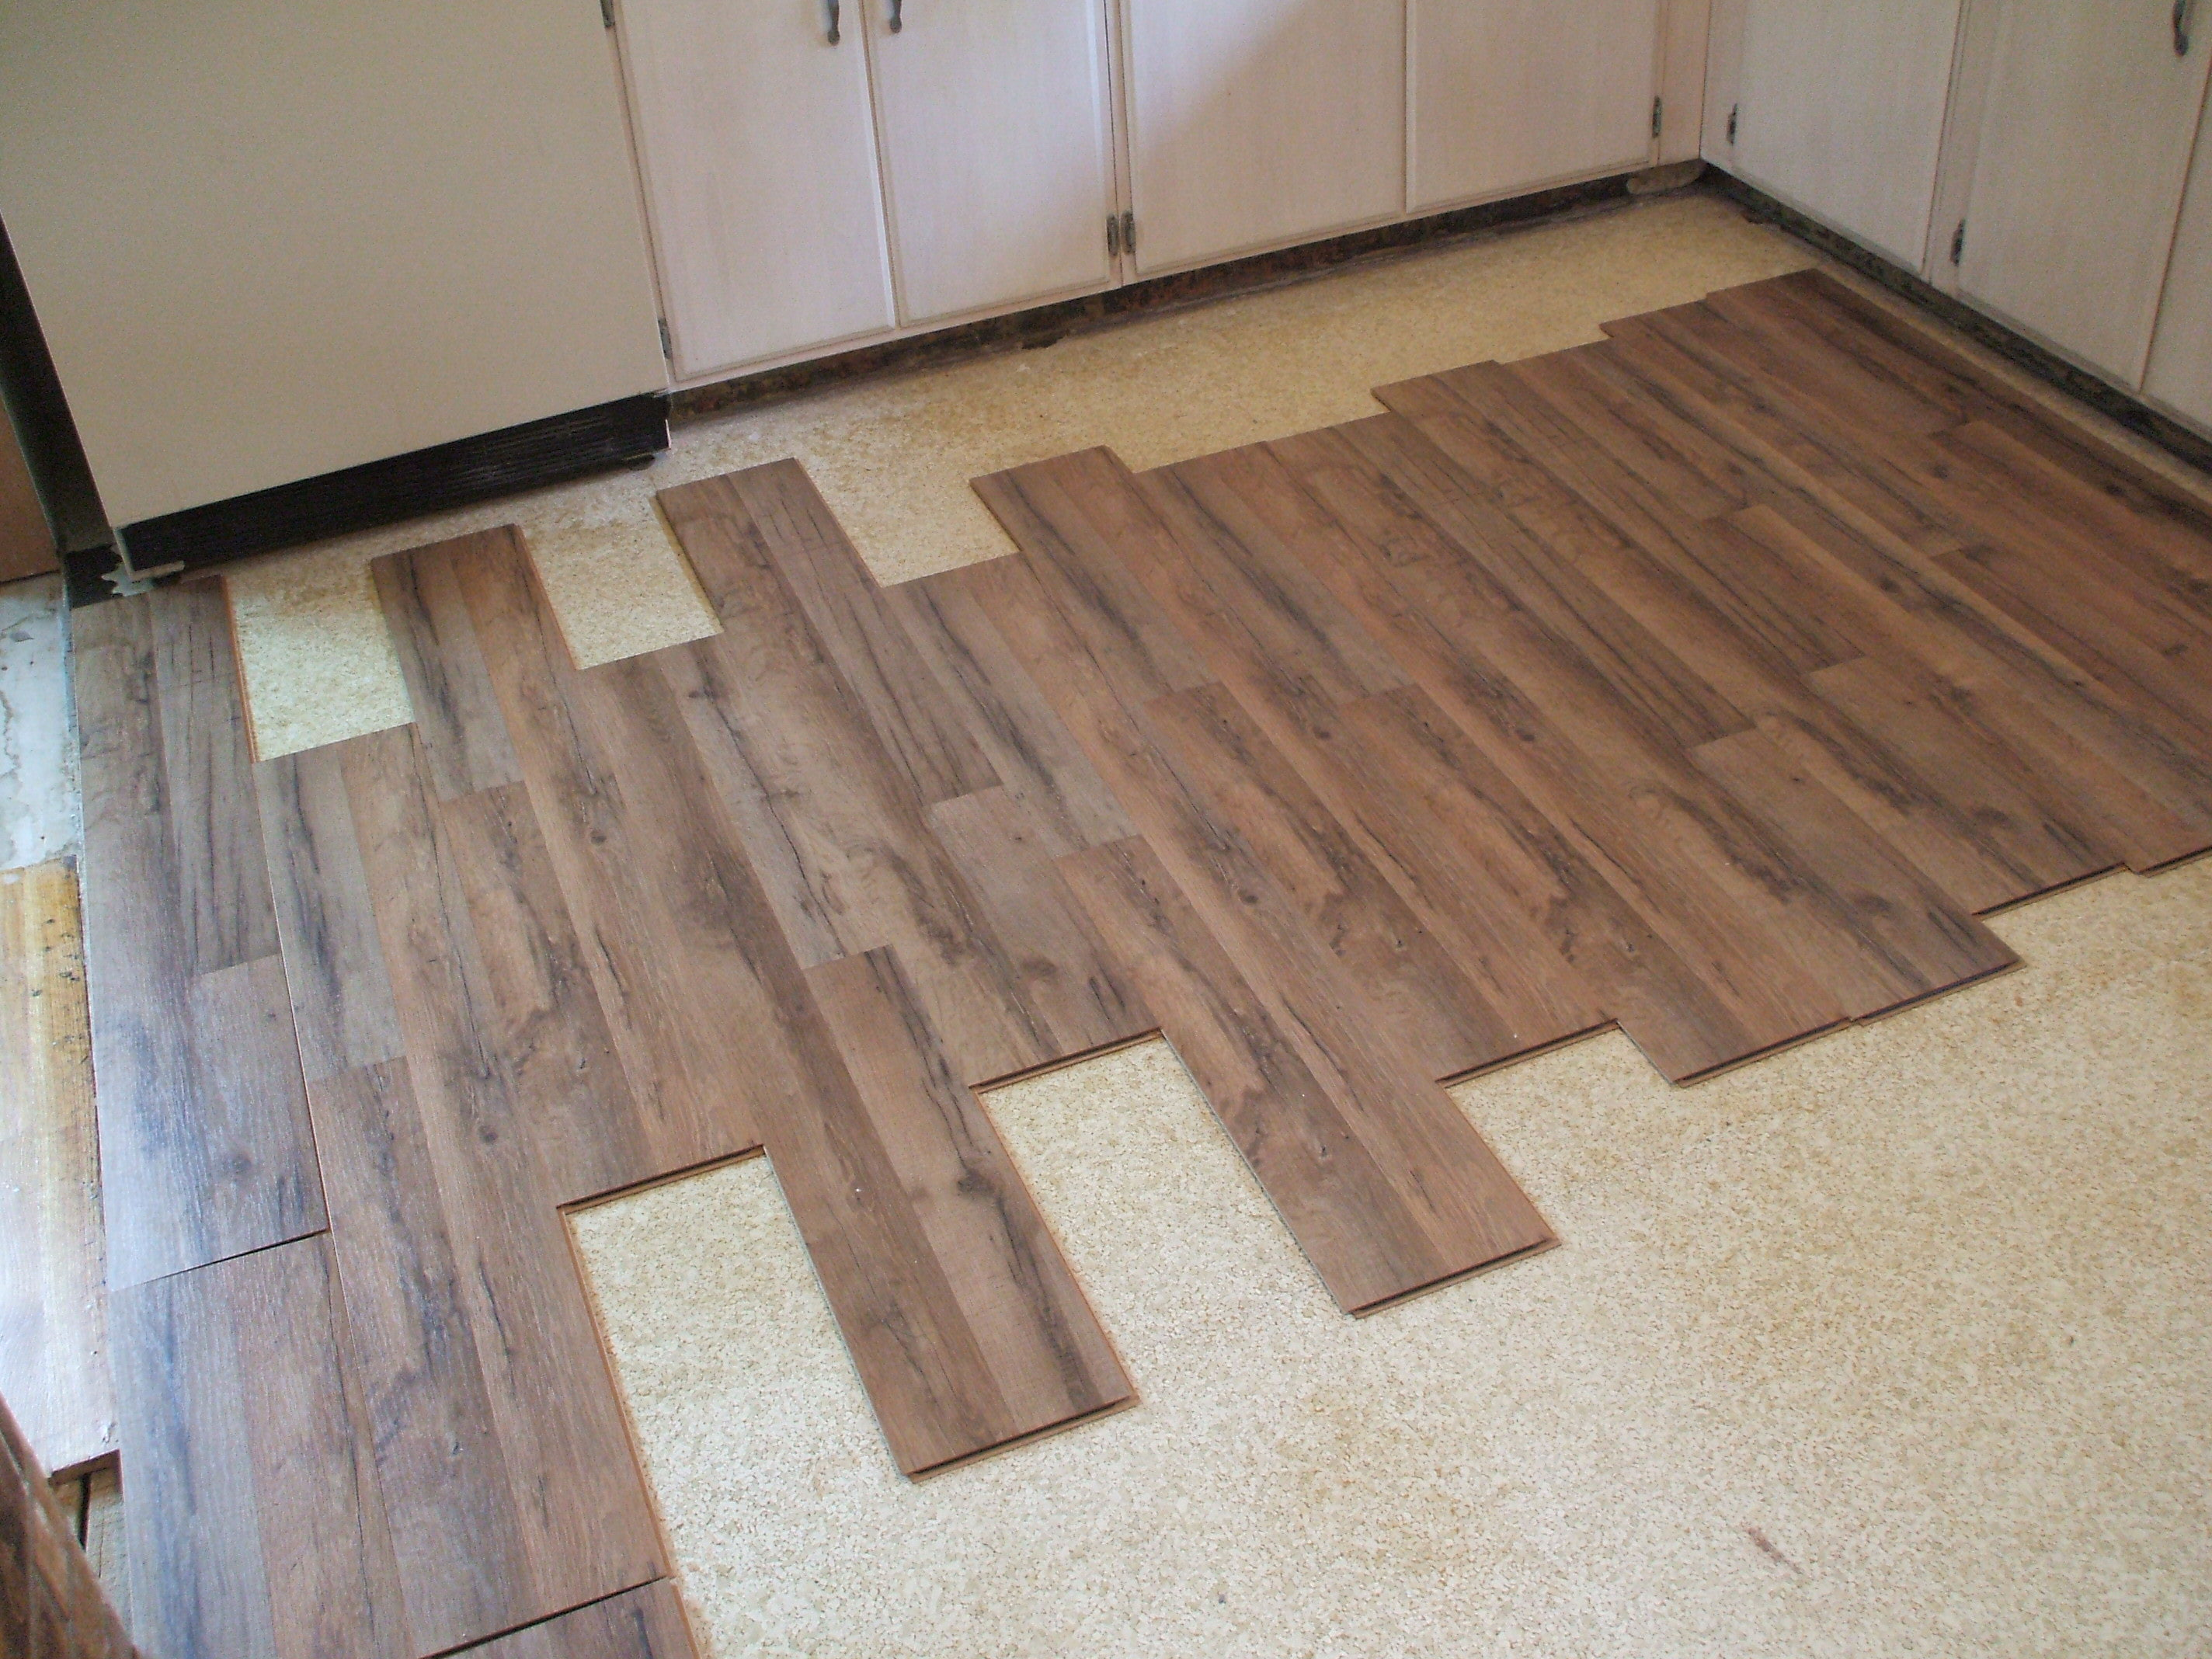 Kitchen Flooring Options Pros And Cons Flooring Options For Your Rental Home Which Is Best